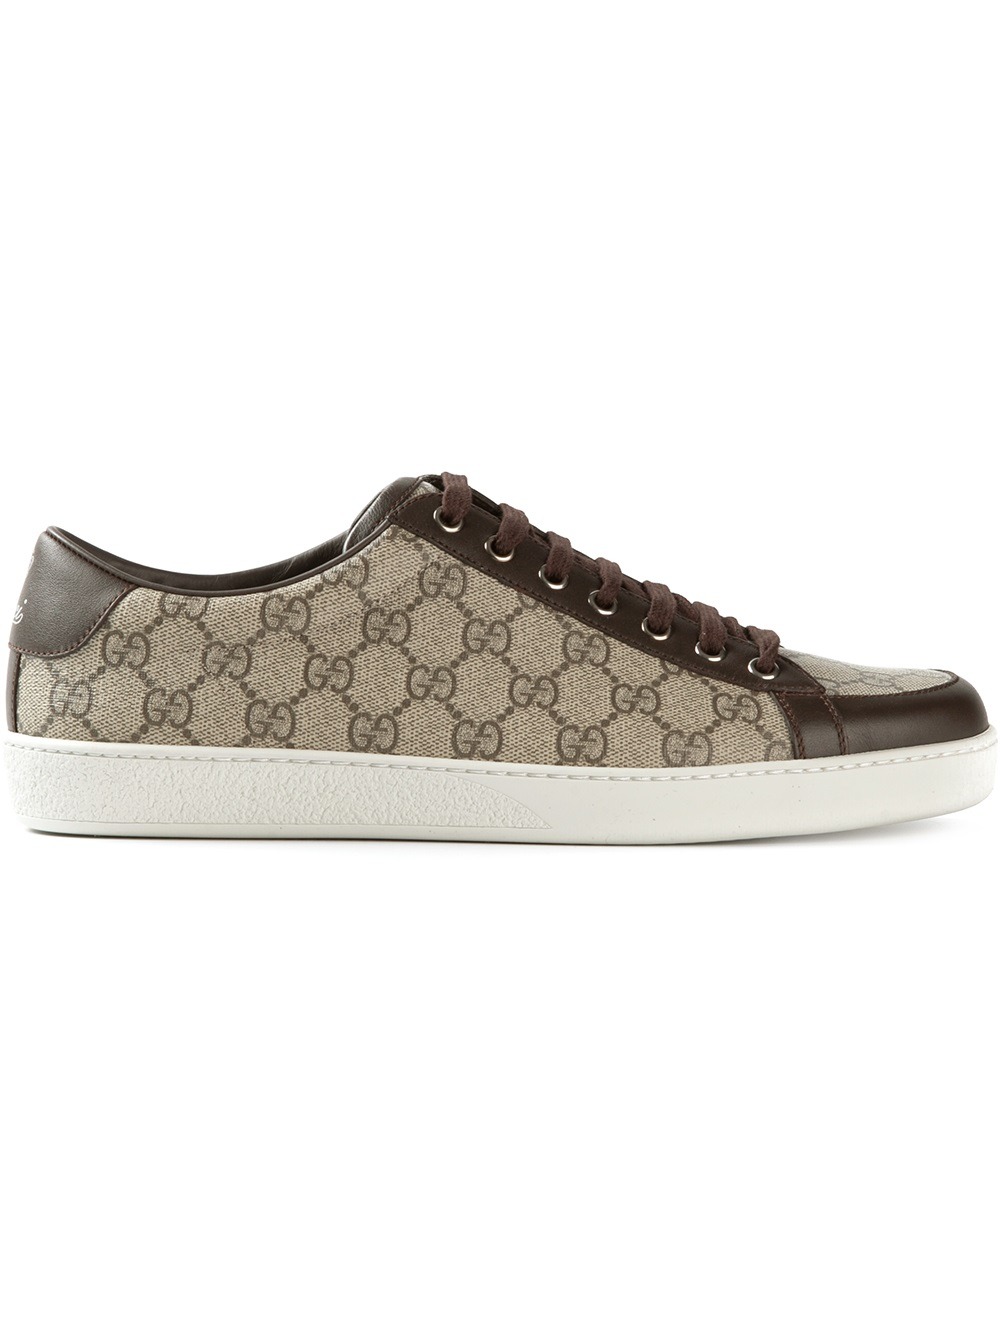 66806e653 Gucci Monogram Print Trainer in Brown for Men - Lyst